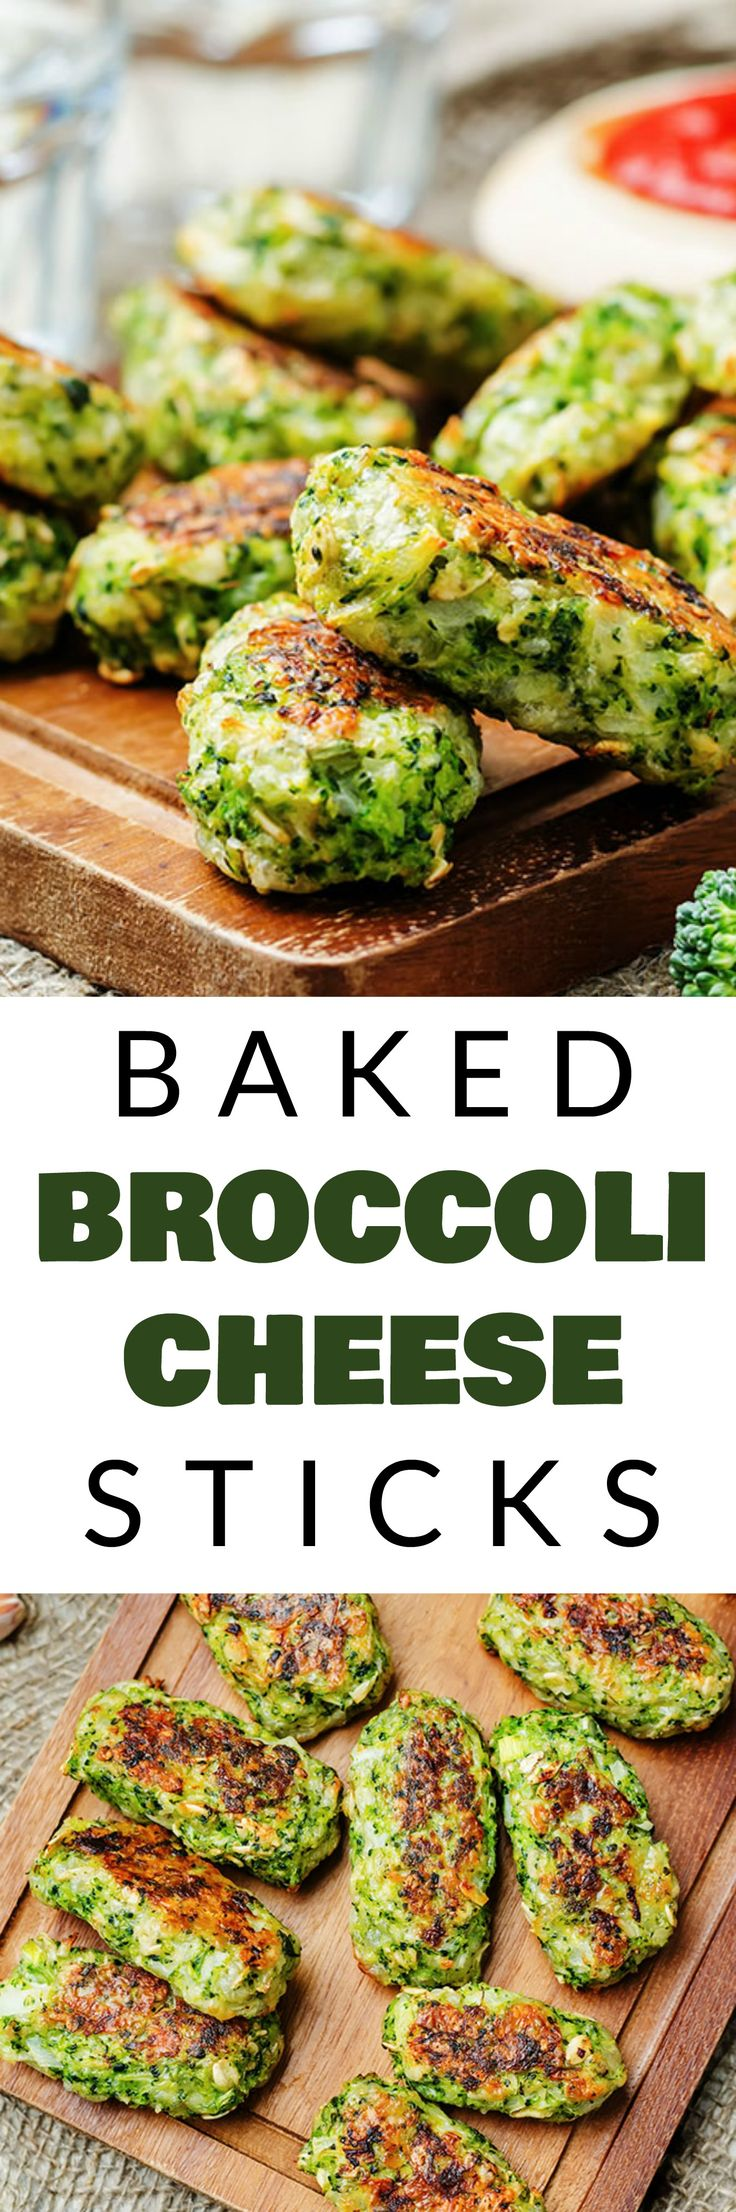 BAKED Broccoli CHEDDAR Cheese Sticks are the best snack! This easy oven baked recipe only uses a few ingredients to make cheese sticks which are perfect to serve as a party appetizer or snack! Your kids are going to love these easy cheesy broccoli bites!